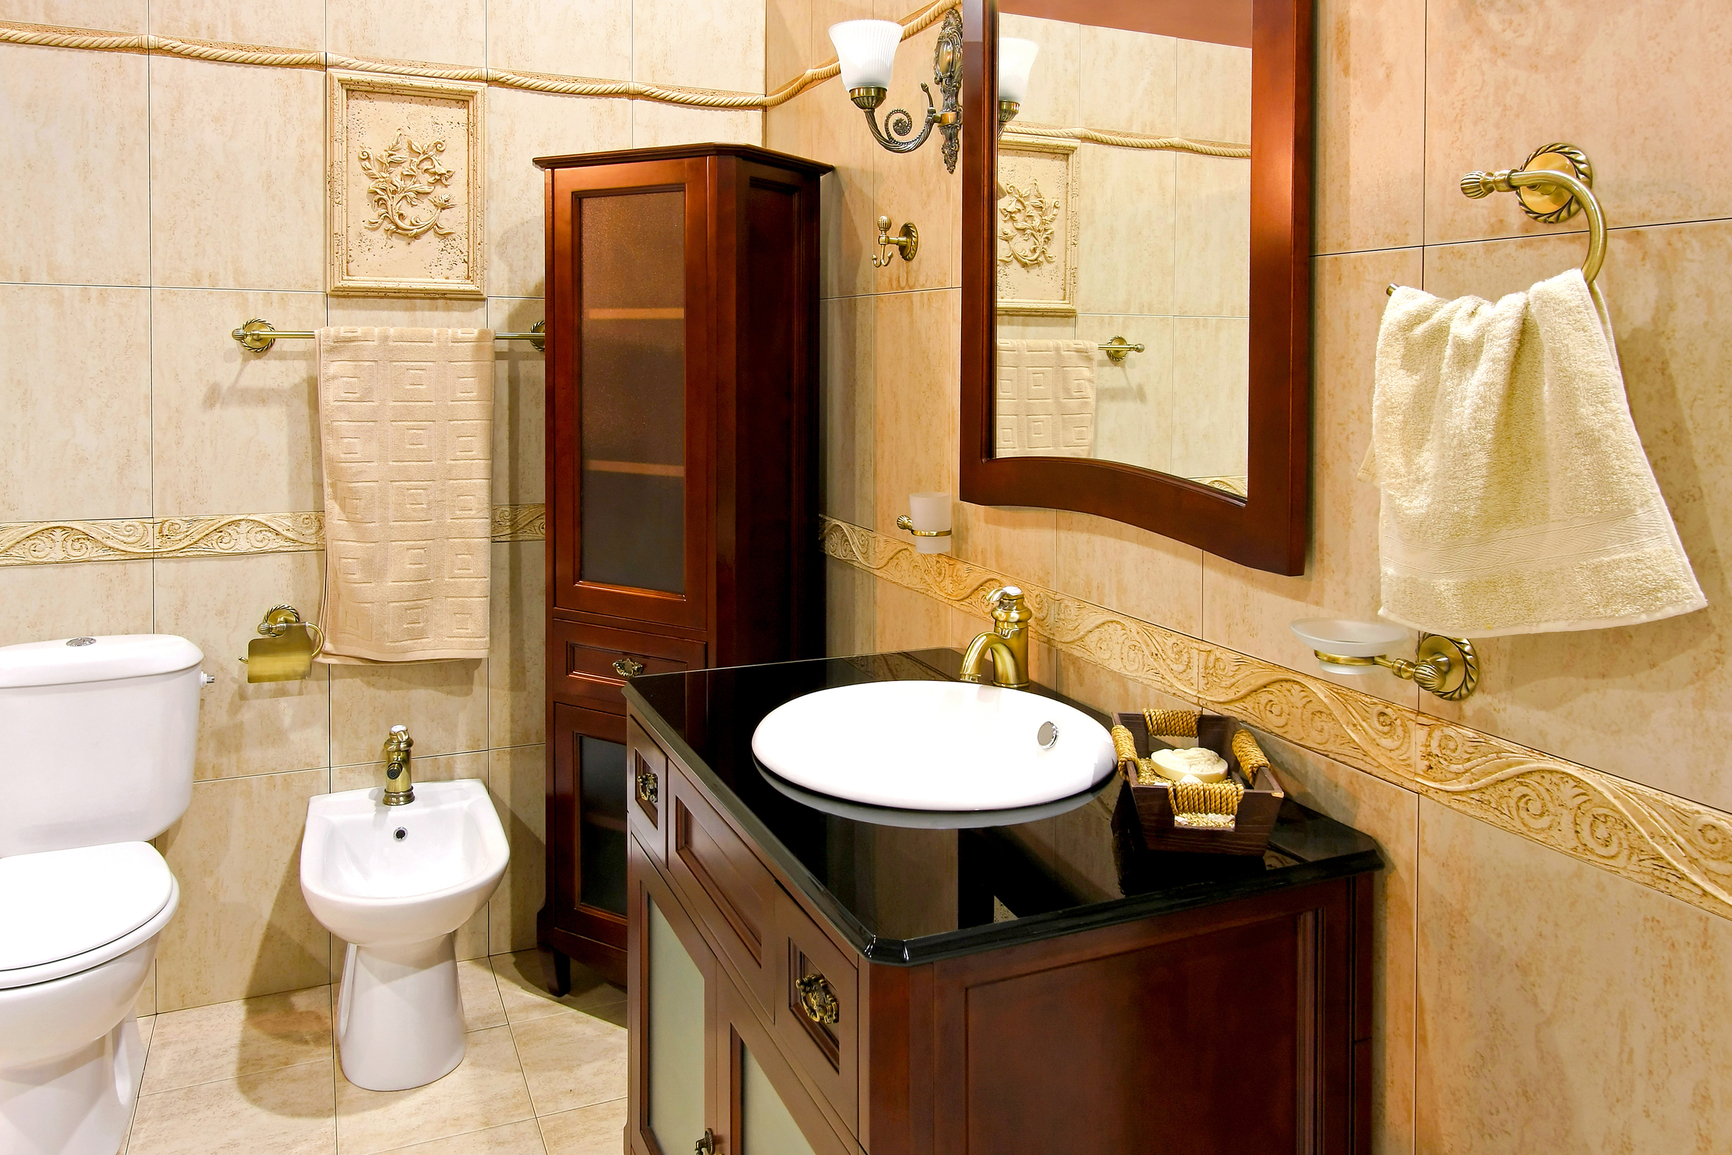 Bathroom remodeling bathroom remodeling simplified - Remodel bathroom designs ...